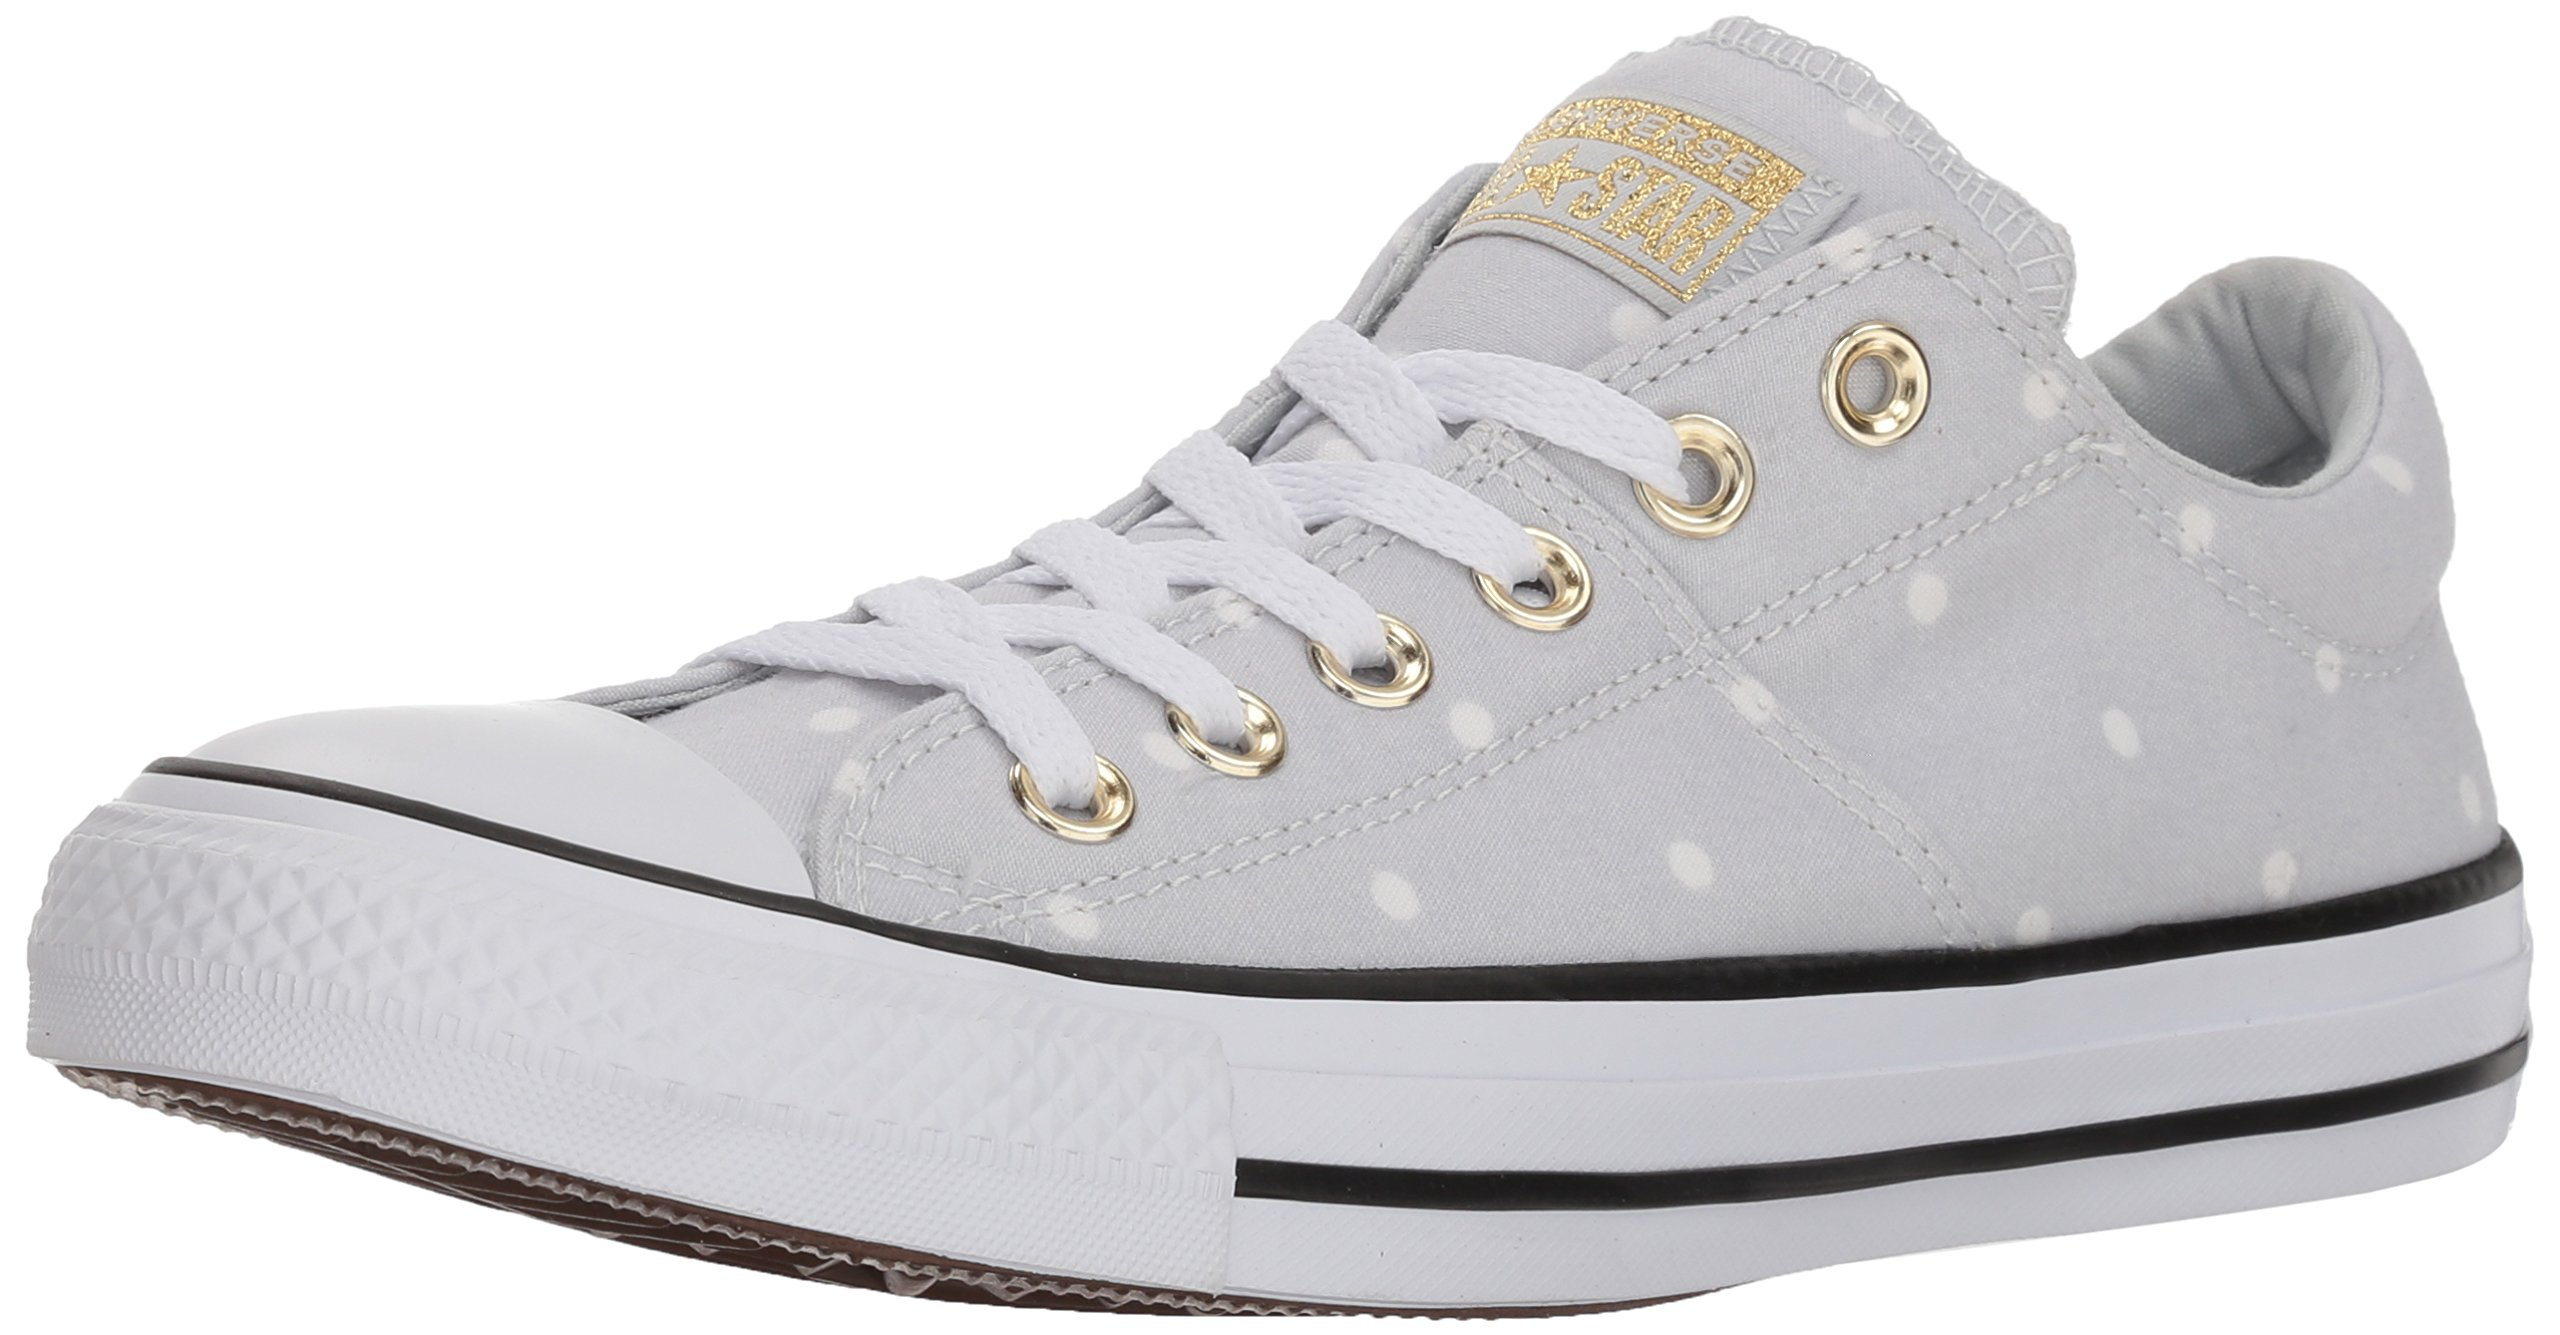 Converse Women's Madison Mini Dots Low Top Sneaker, Pure Platinum/Gold/White, 6.5 M US